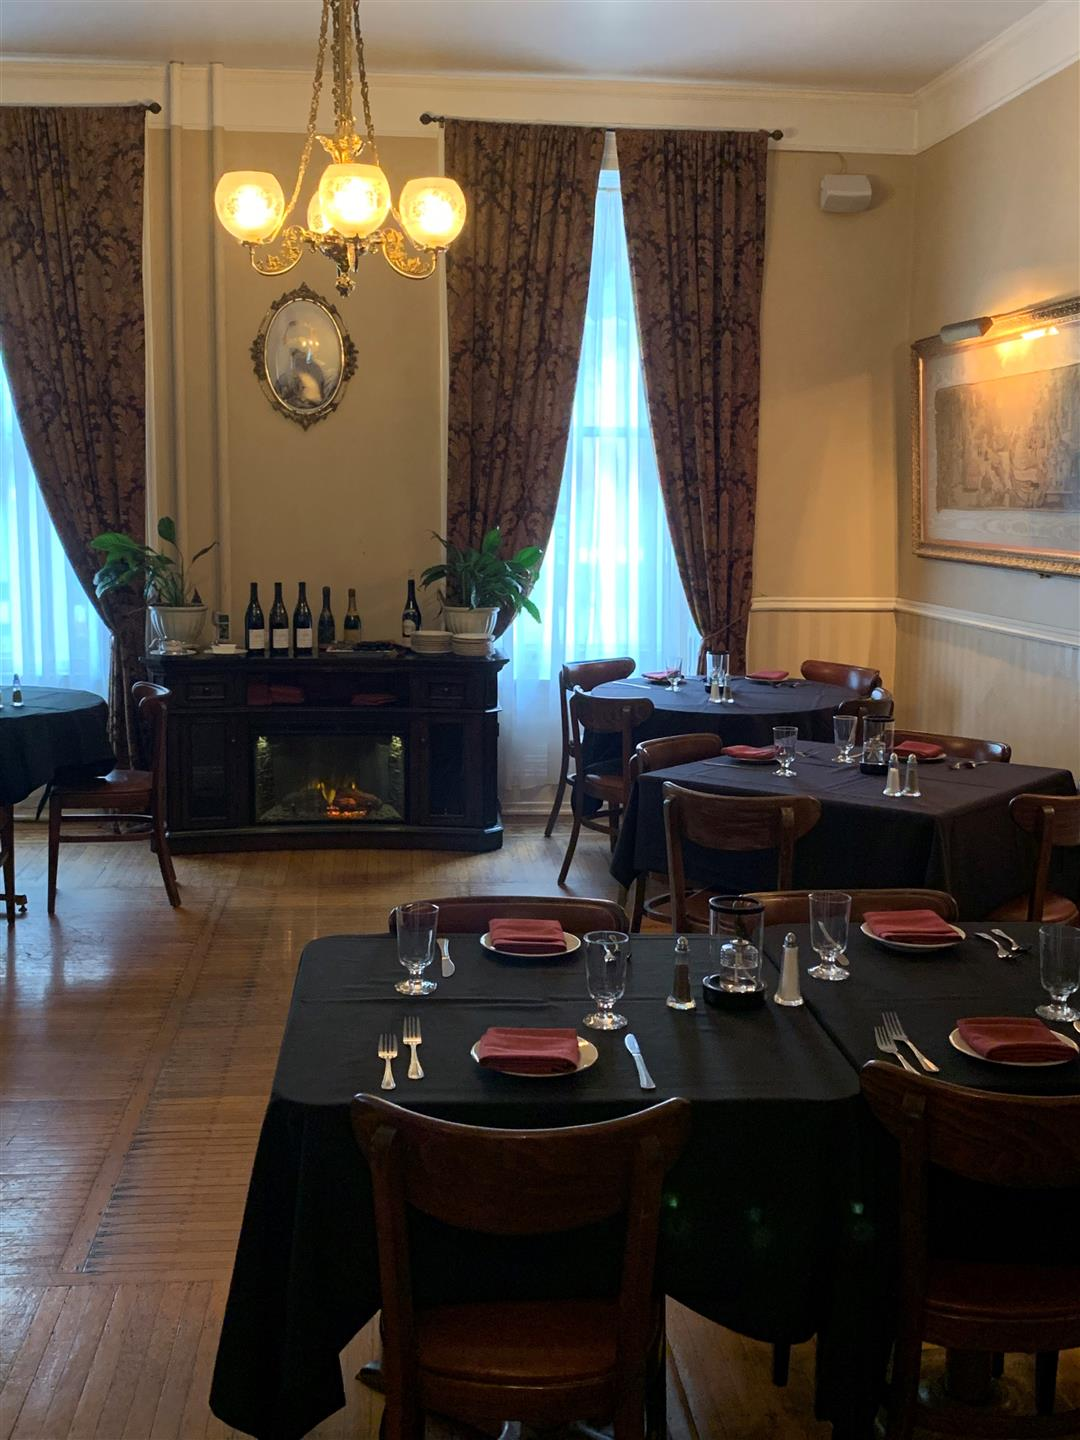 dining room filled with set tables and chairs